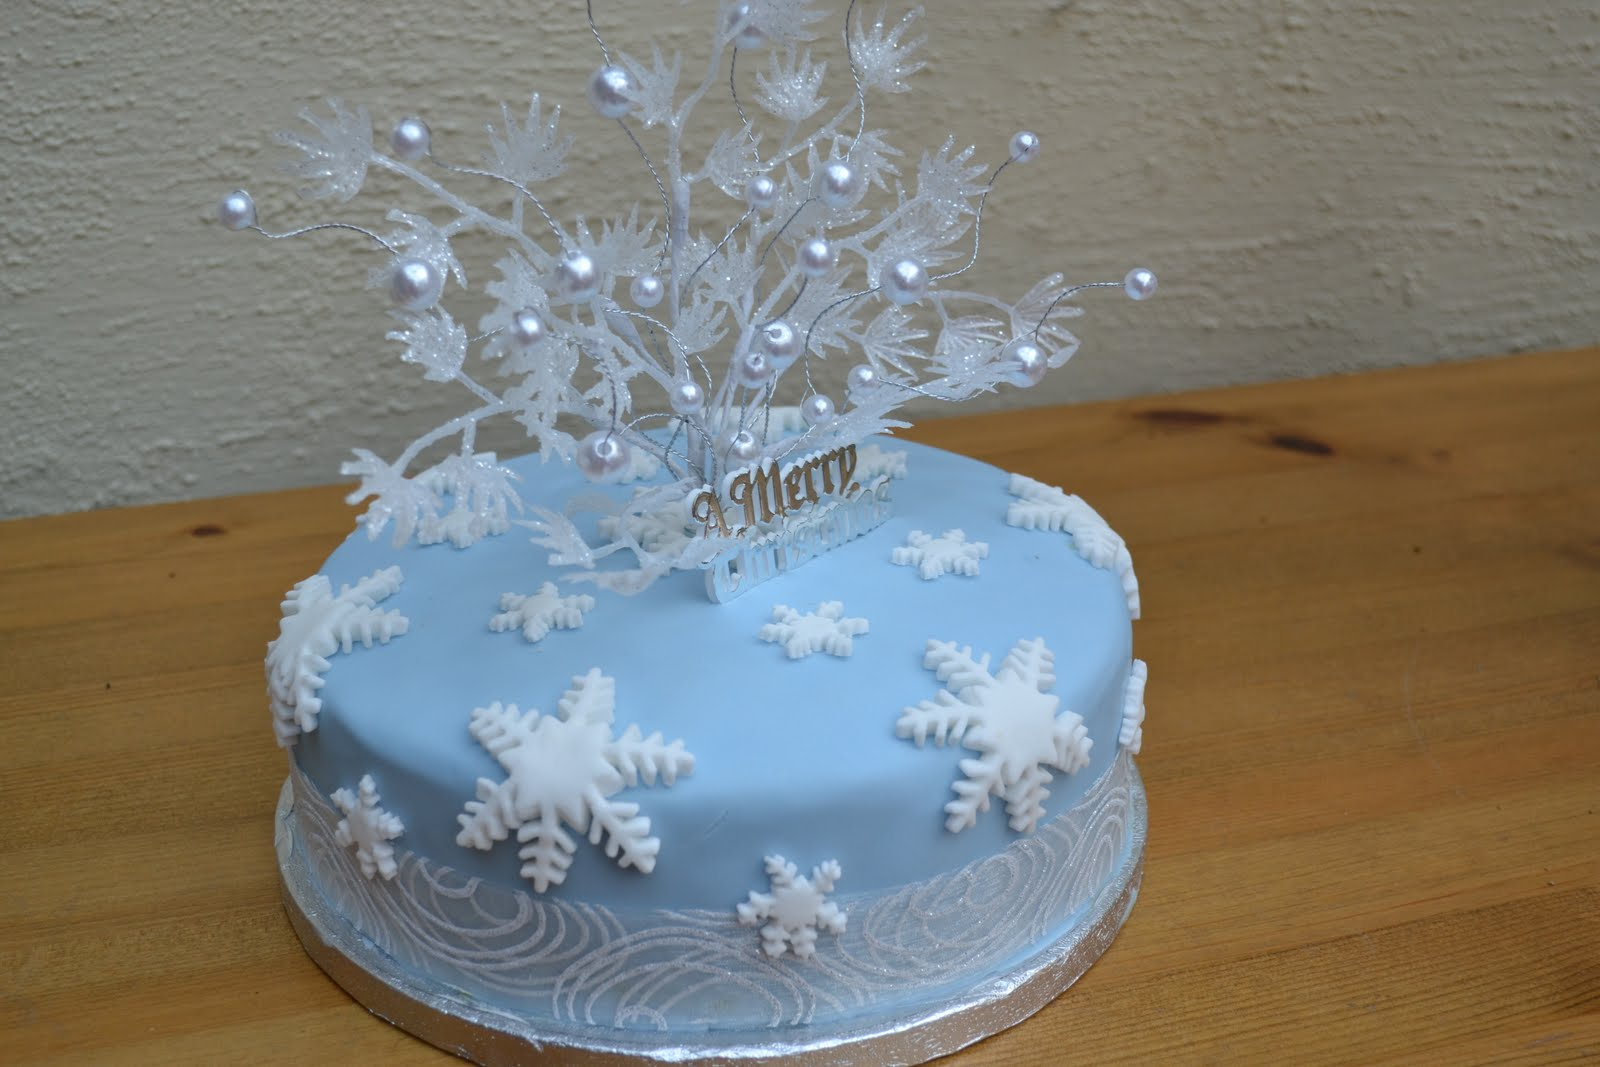 Hannahs creative cakes ice blue christmas cake for Iced christmas cakes